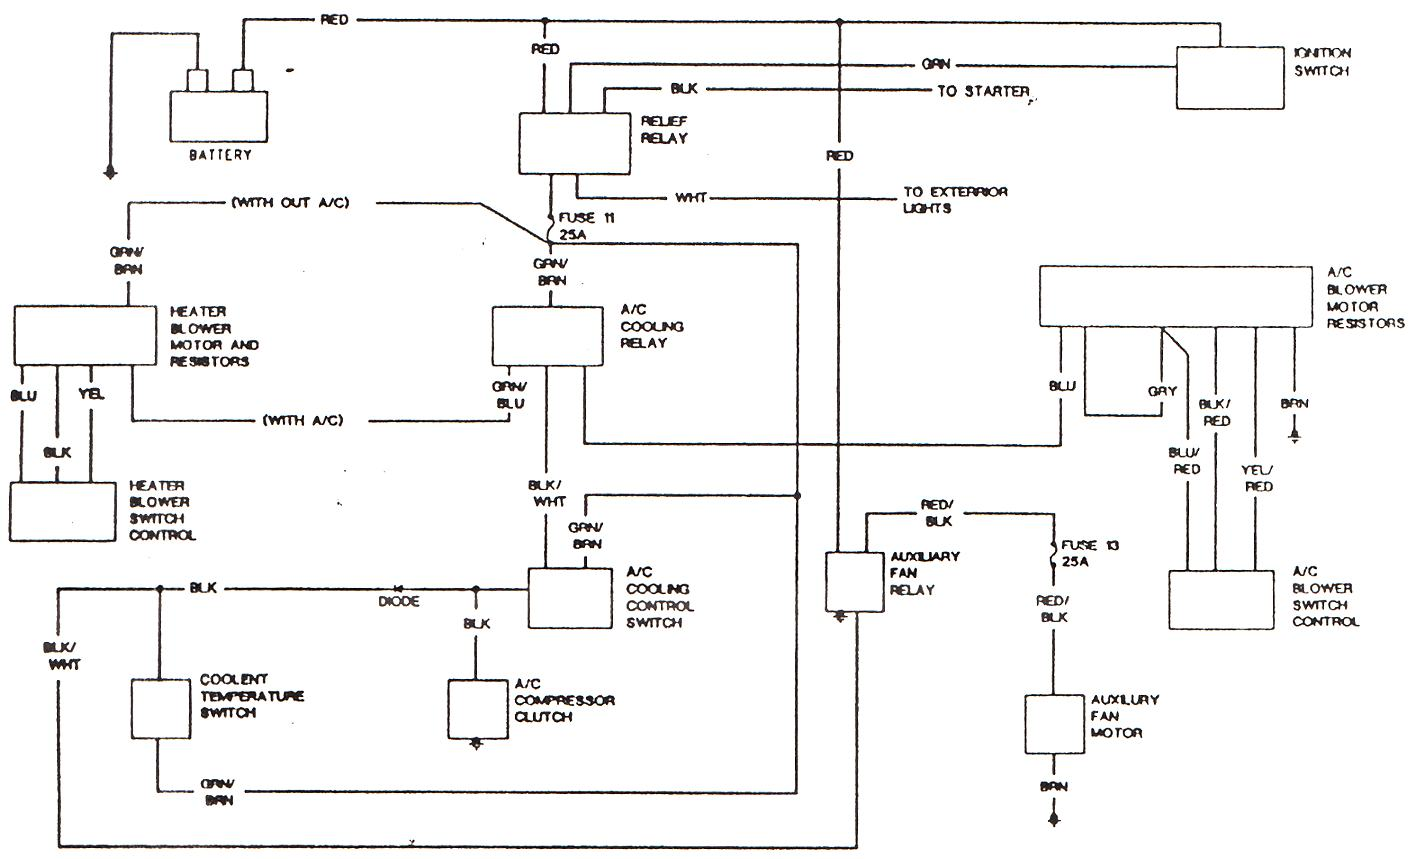 ac motor diagrams ac motor kit picture wiring diagram a dimmer switch with power wiring diagram a stop start button [ 1416 x 859 Pixel ]